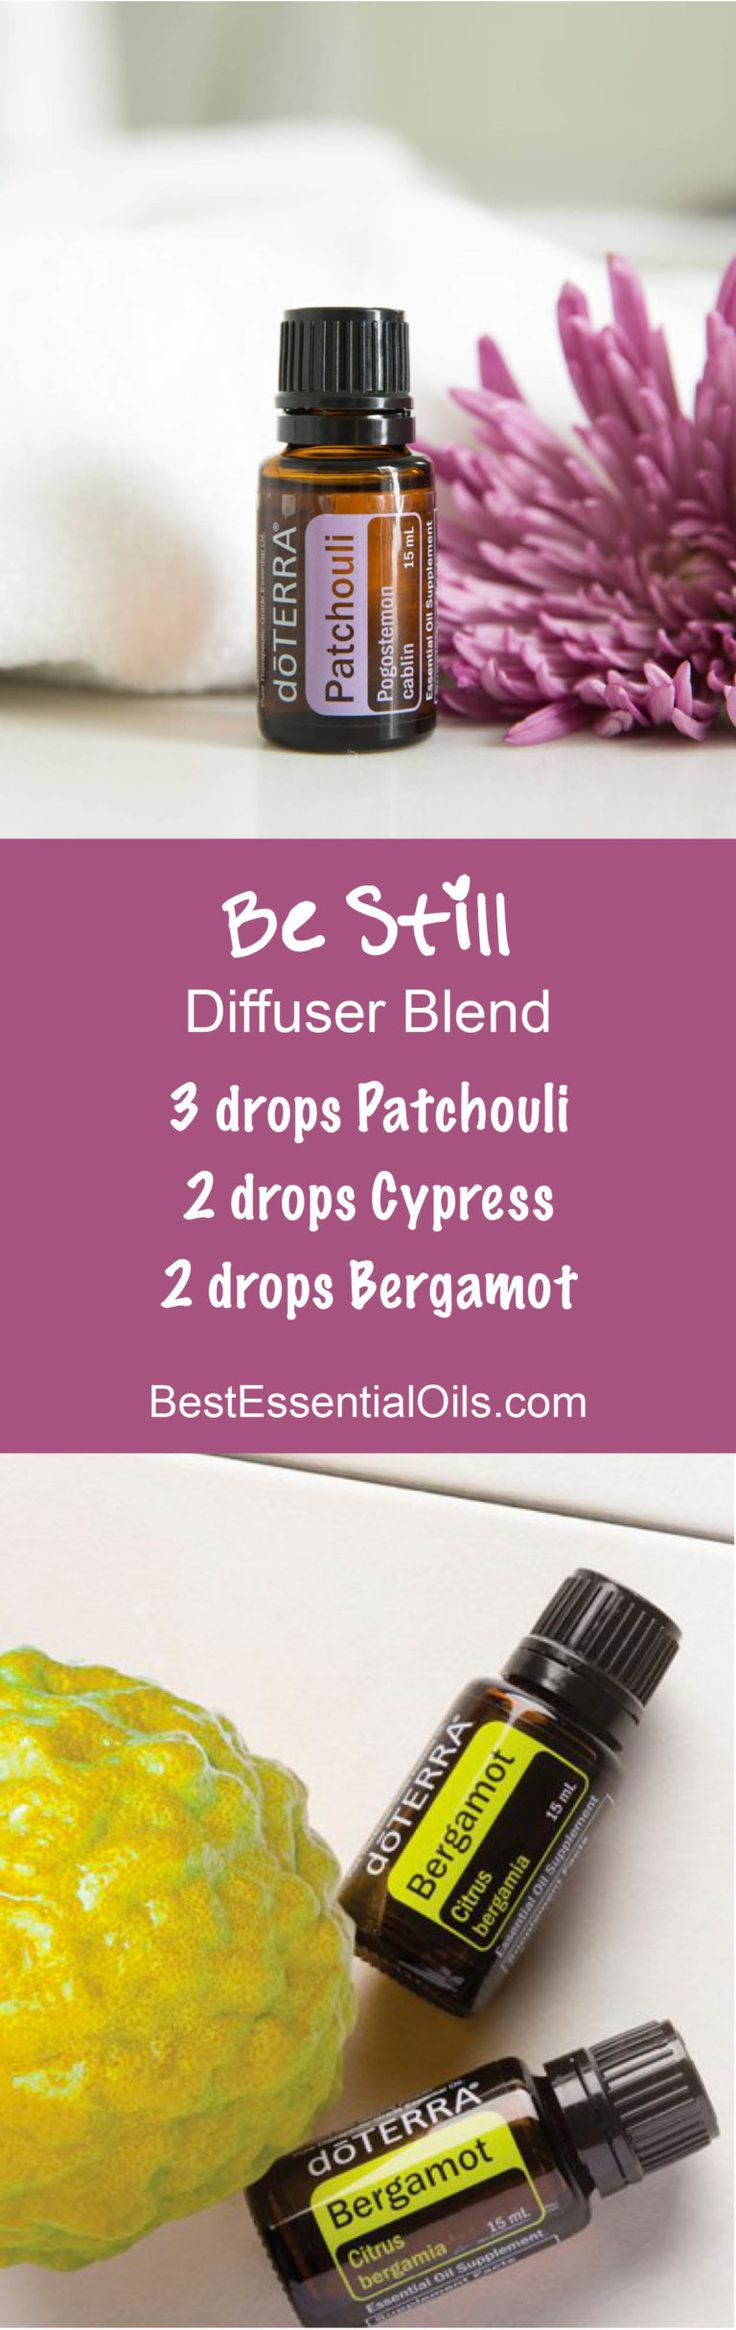 Best 25 Doterra Ideas On Pinterest Doterra Blends